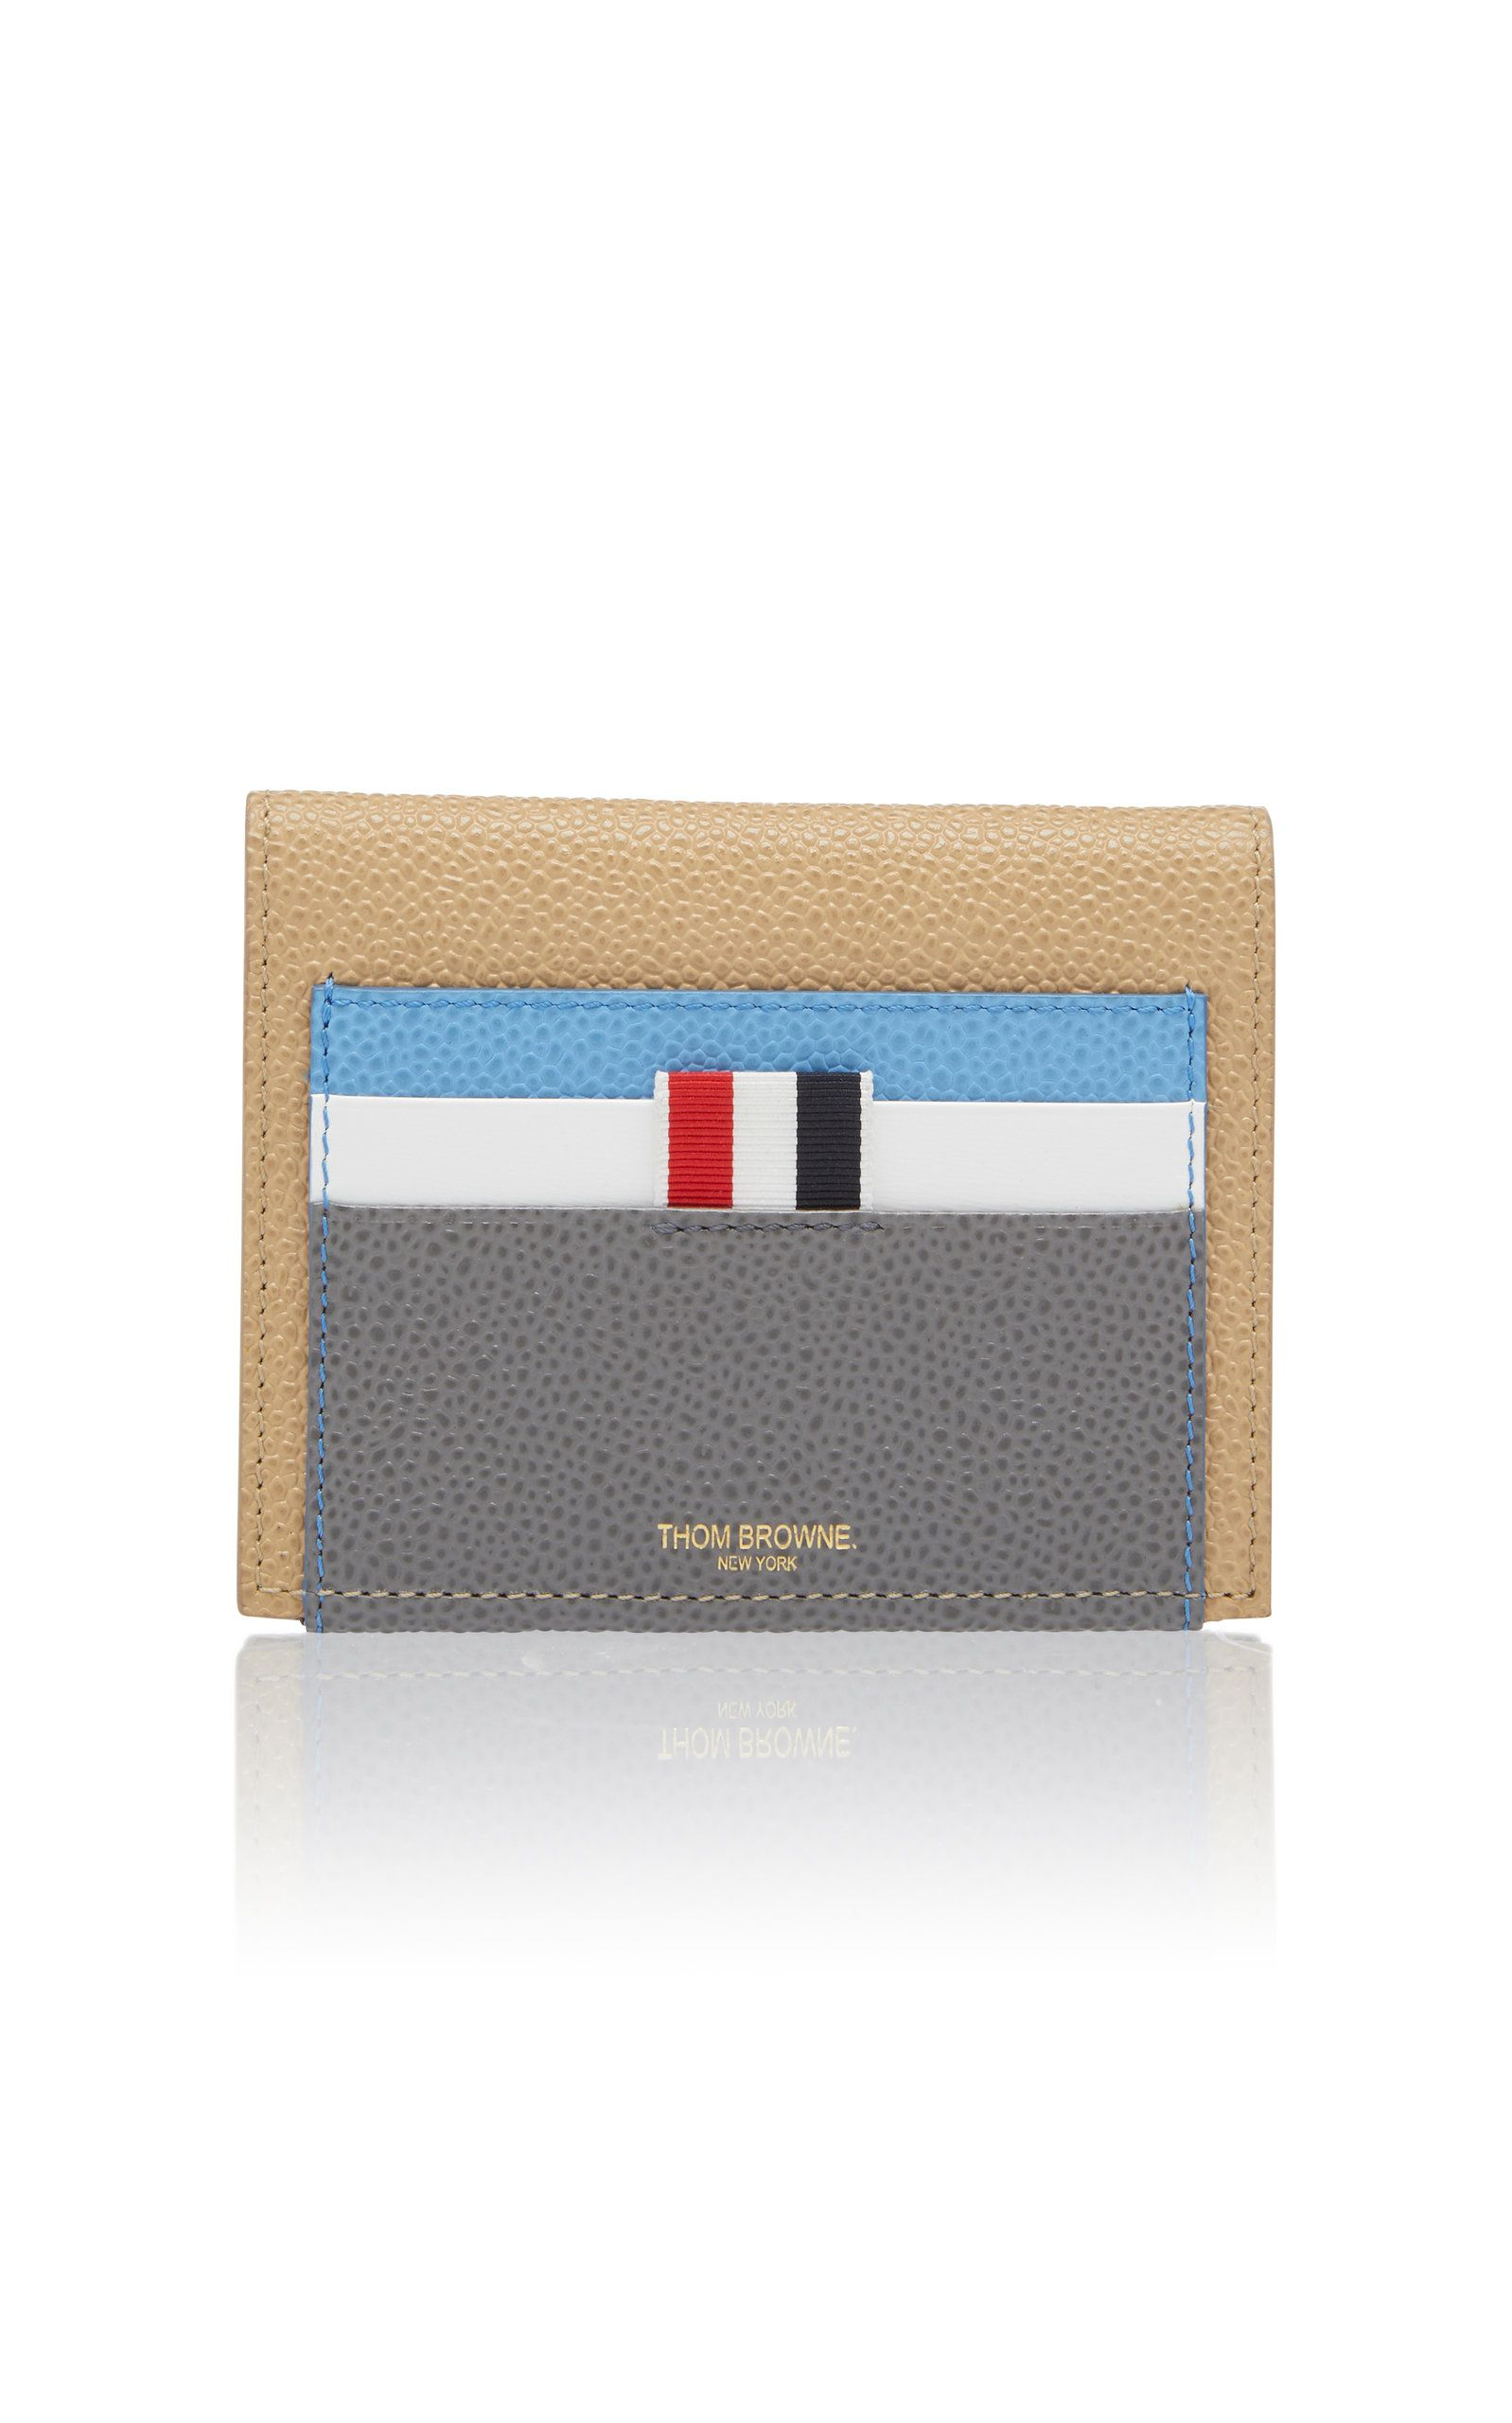 669e0c1a65 THOM BROWNE COLOR BLOCK TEXTURED LEATHER CARD CASE. #thombrowne #bags # leather #wallet #accessories